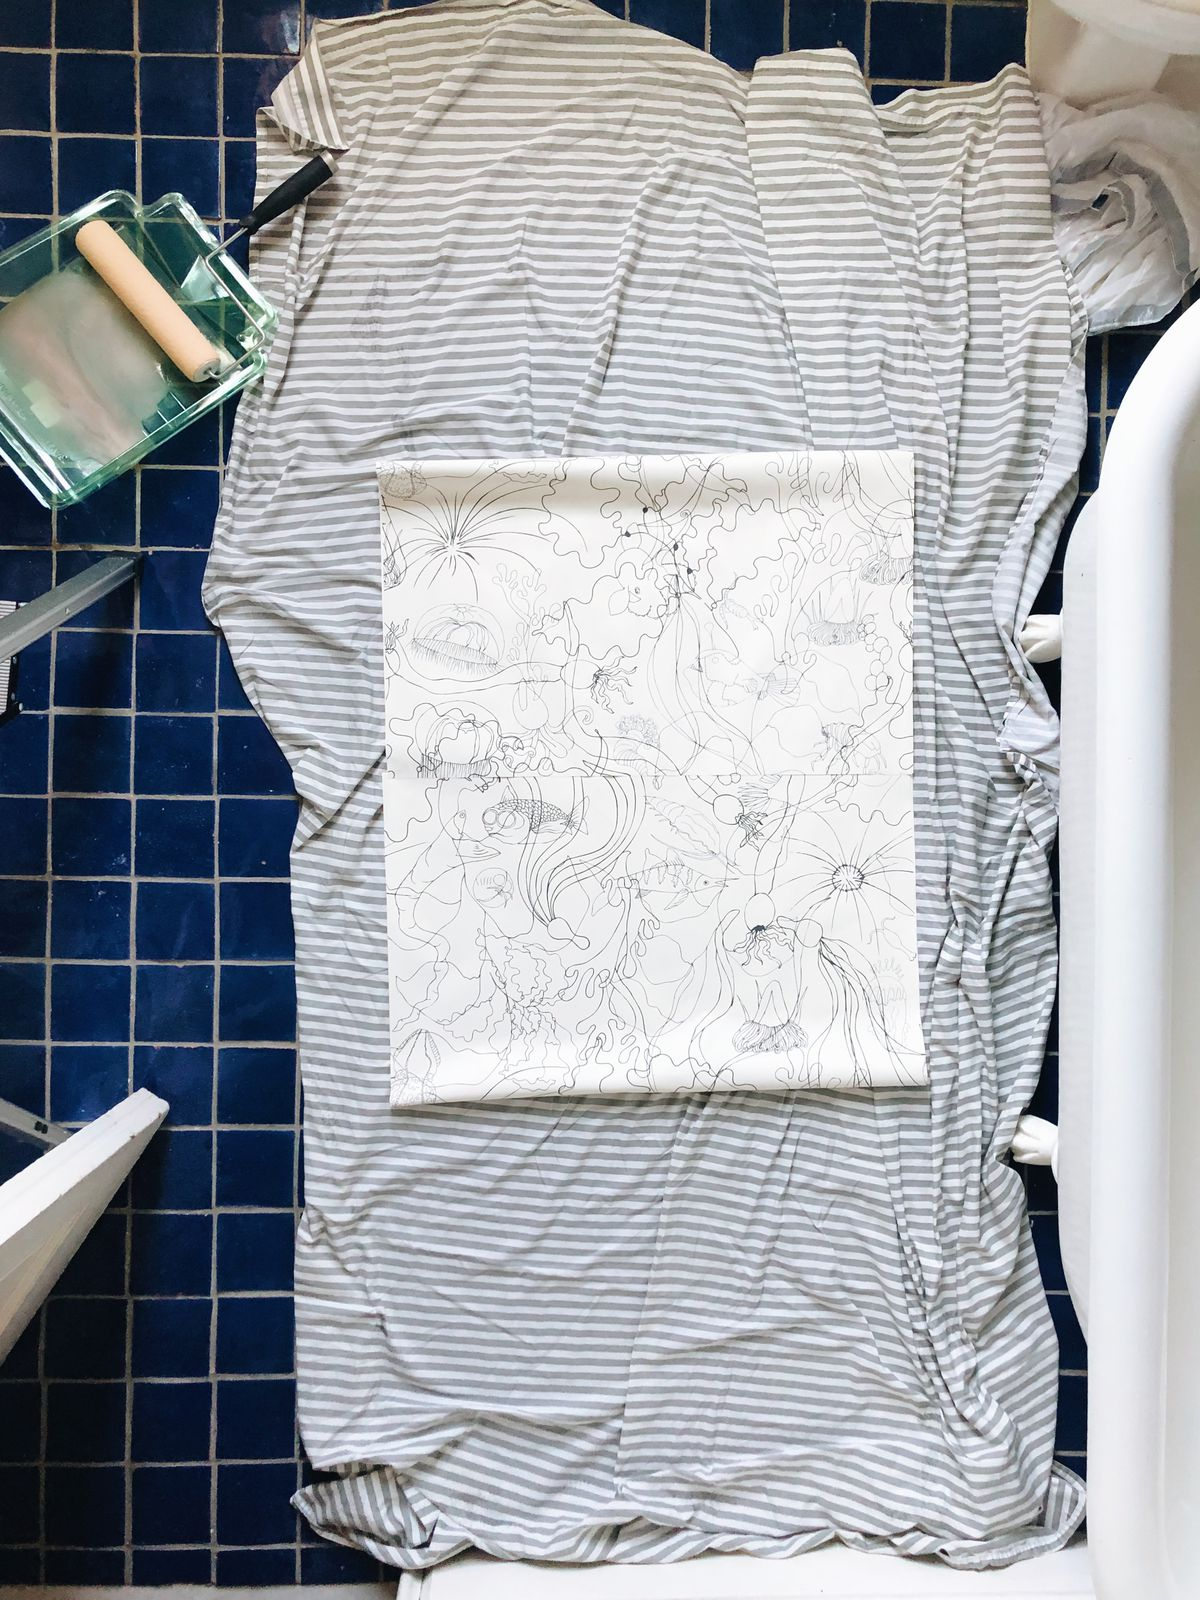 Minimalist wallpaper sits on top of a piece of fabric on the royal blue tile of the bathroom.